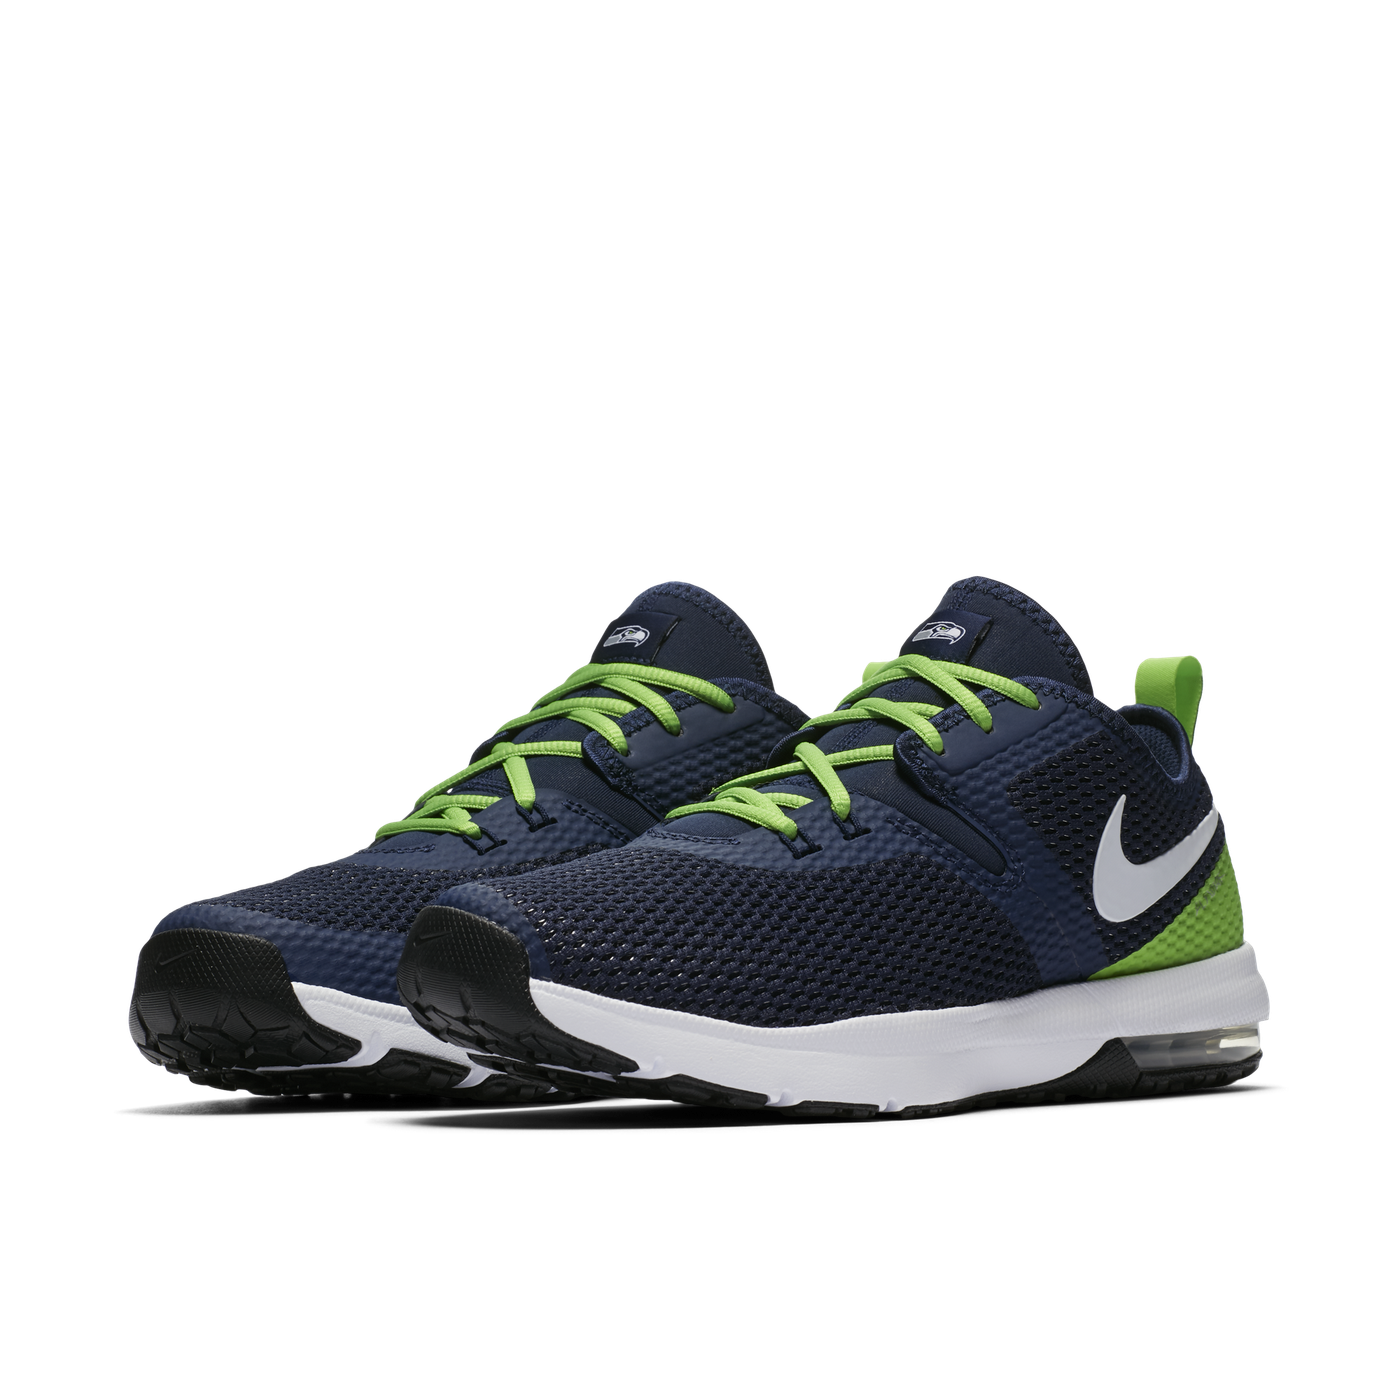 4d66b72e Nike releases new NFL-themed Air Max Typha 2 shoe collection ...